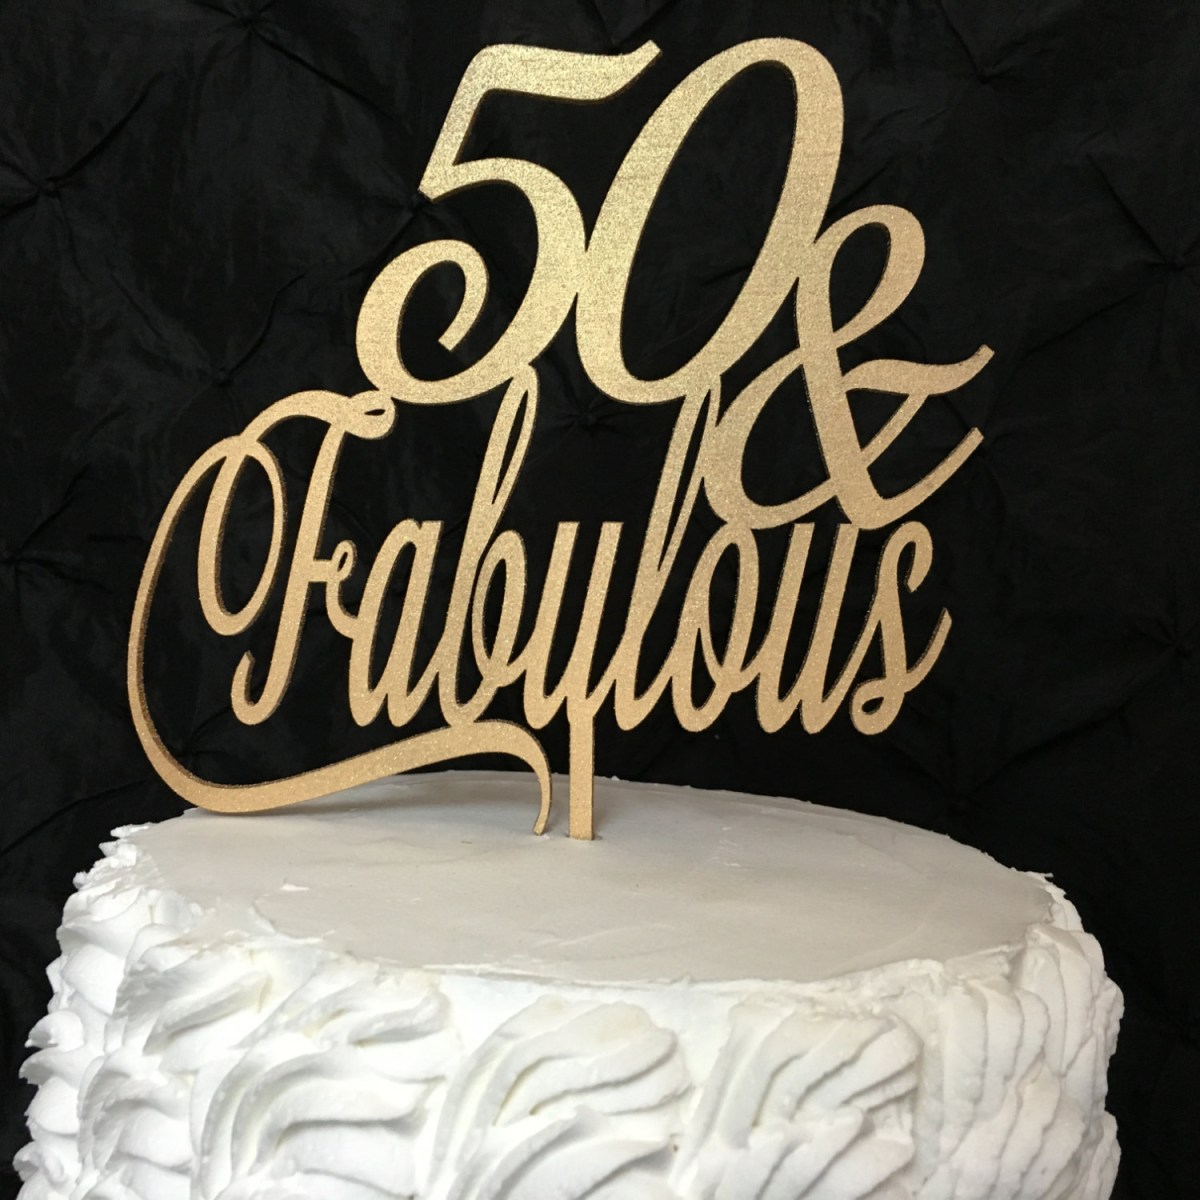 Strange 50 Birthday Cakes 50 Fabulous Cake Topper 50Th Birthday Cake Personalised Birthday Cards Veneteletsinfo